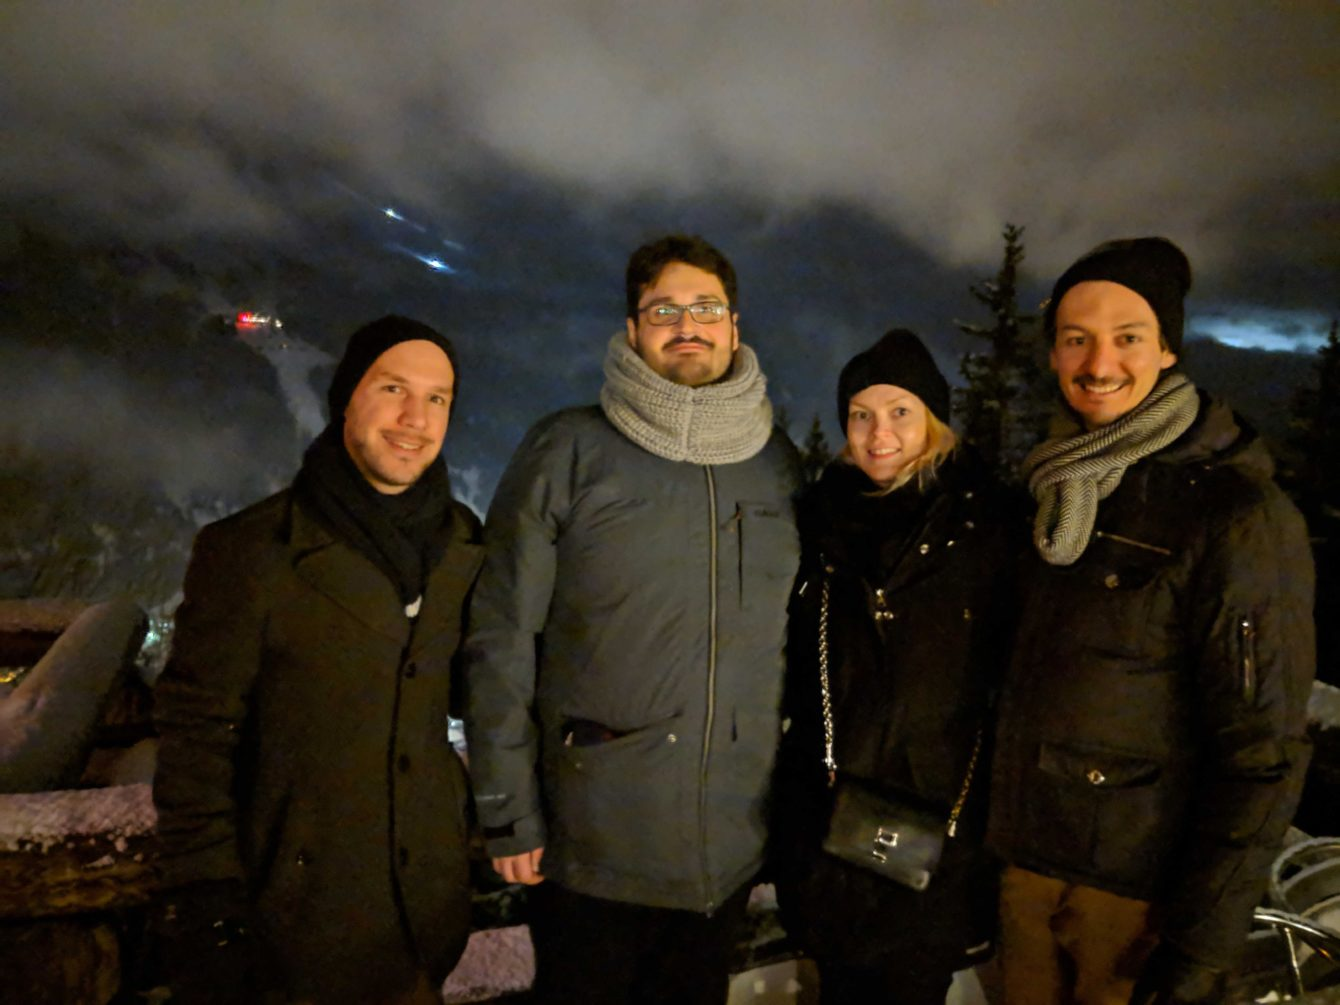 Florian Loretan, Mario Vercellotti, Päivi Kaunisto and David Corbacho at Davos